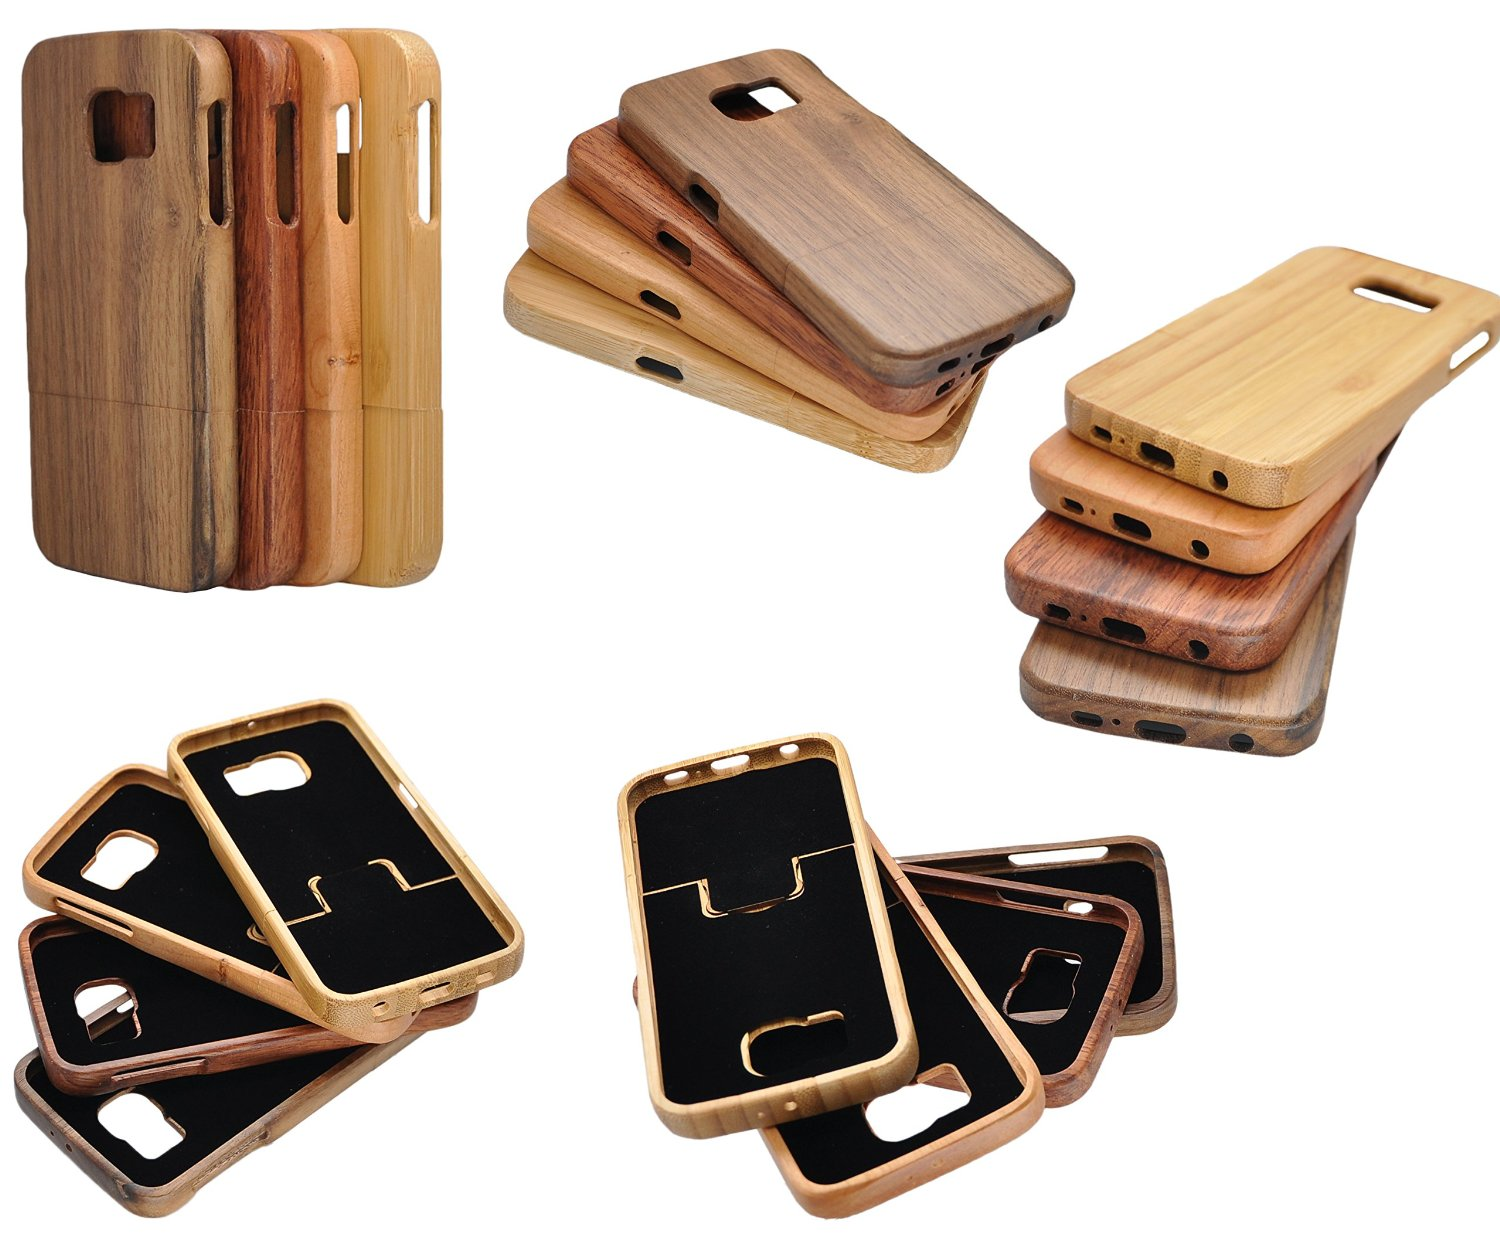 s6 cases, best s6 cases, wood s6 cases, phone cases